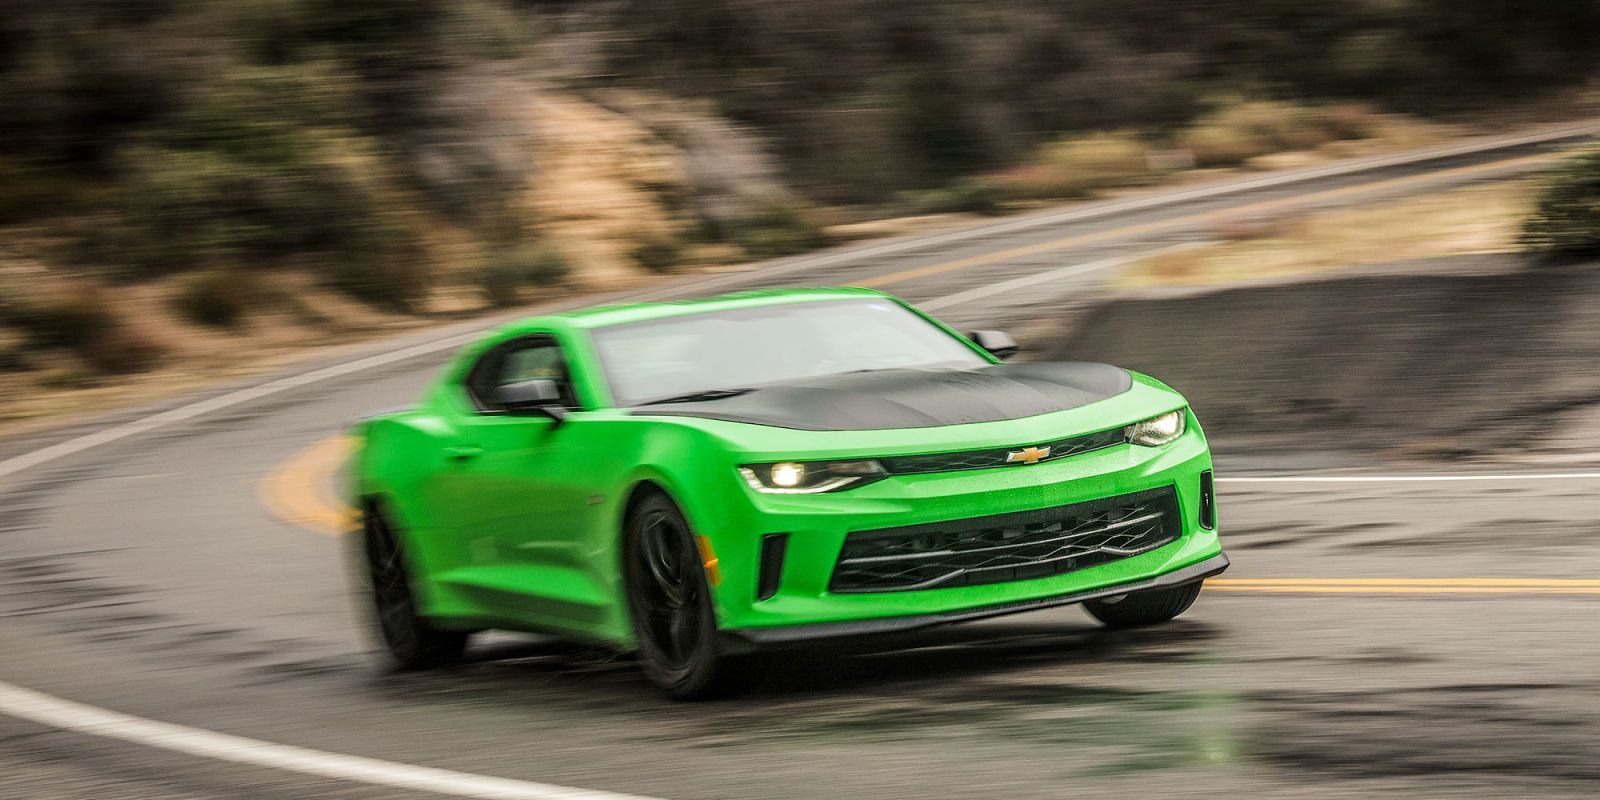 16 Fastest Cars Under 40k In 2018 Most Ful Sedans Sports For Less Than 40 000